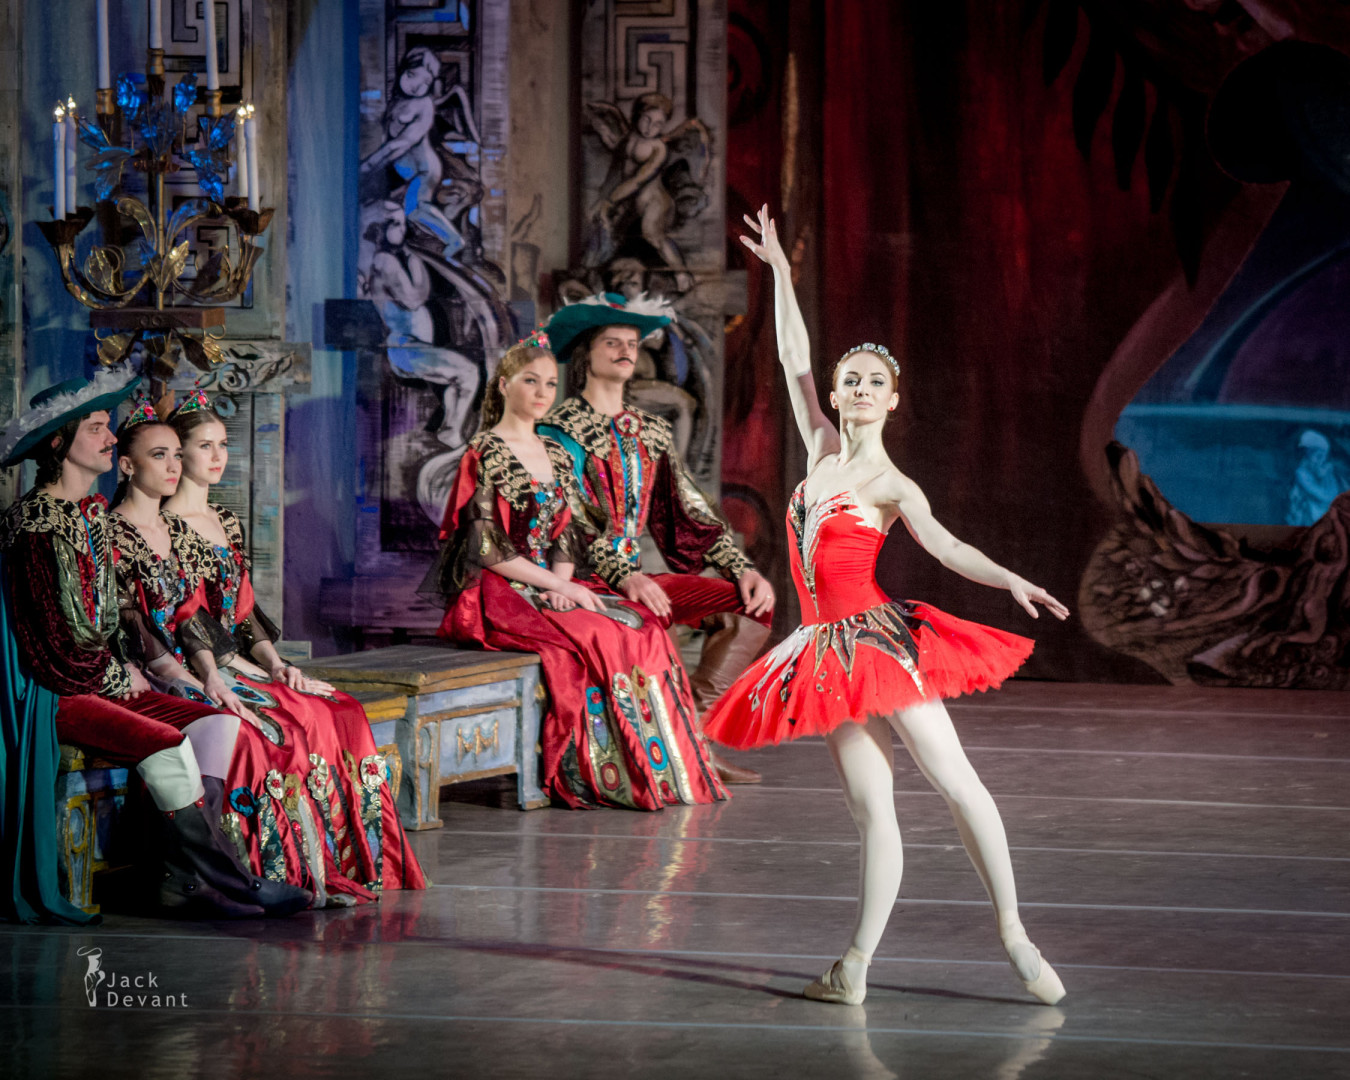 Yulia Kulik as Fairy of Boldness in The Sleeping Beauty